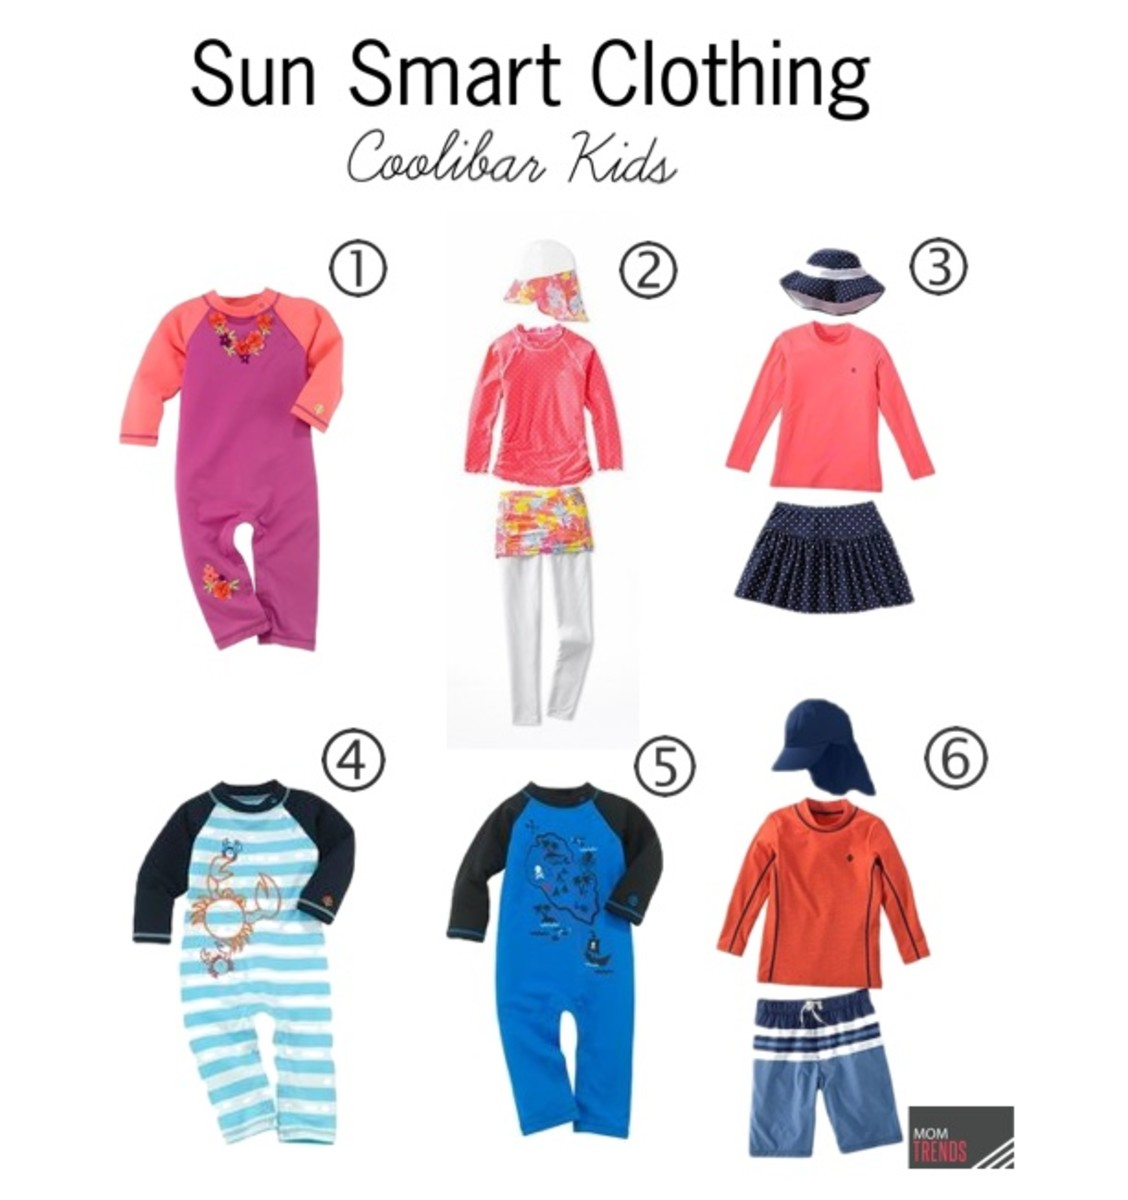 SPF swimwear for kids